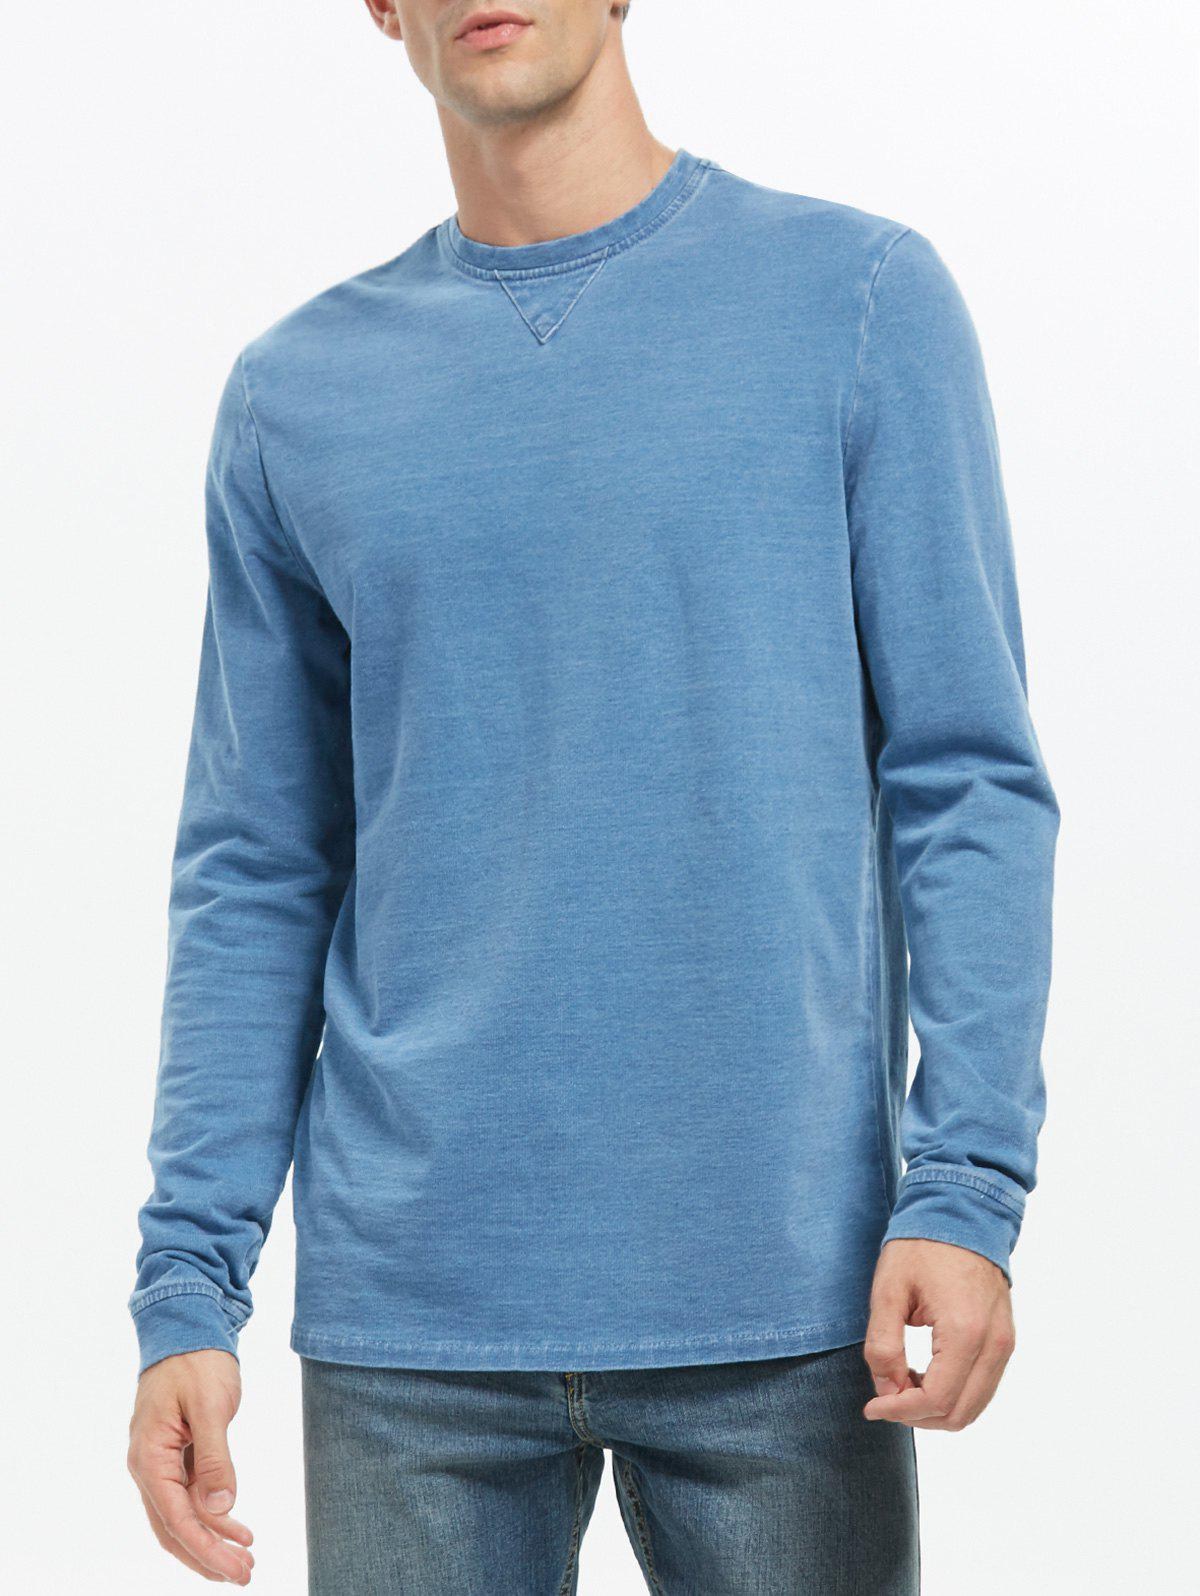 Plain Crew Neck Sweatshirt - BLUE 3XL